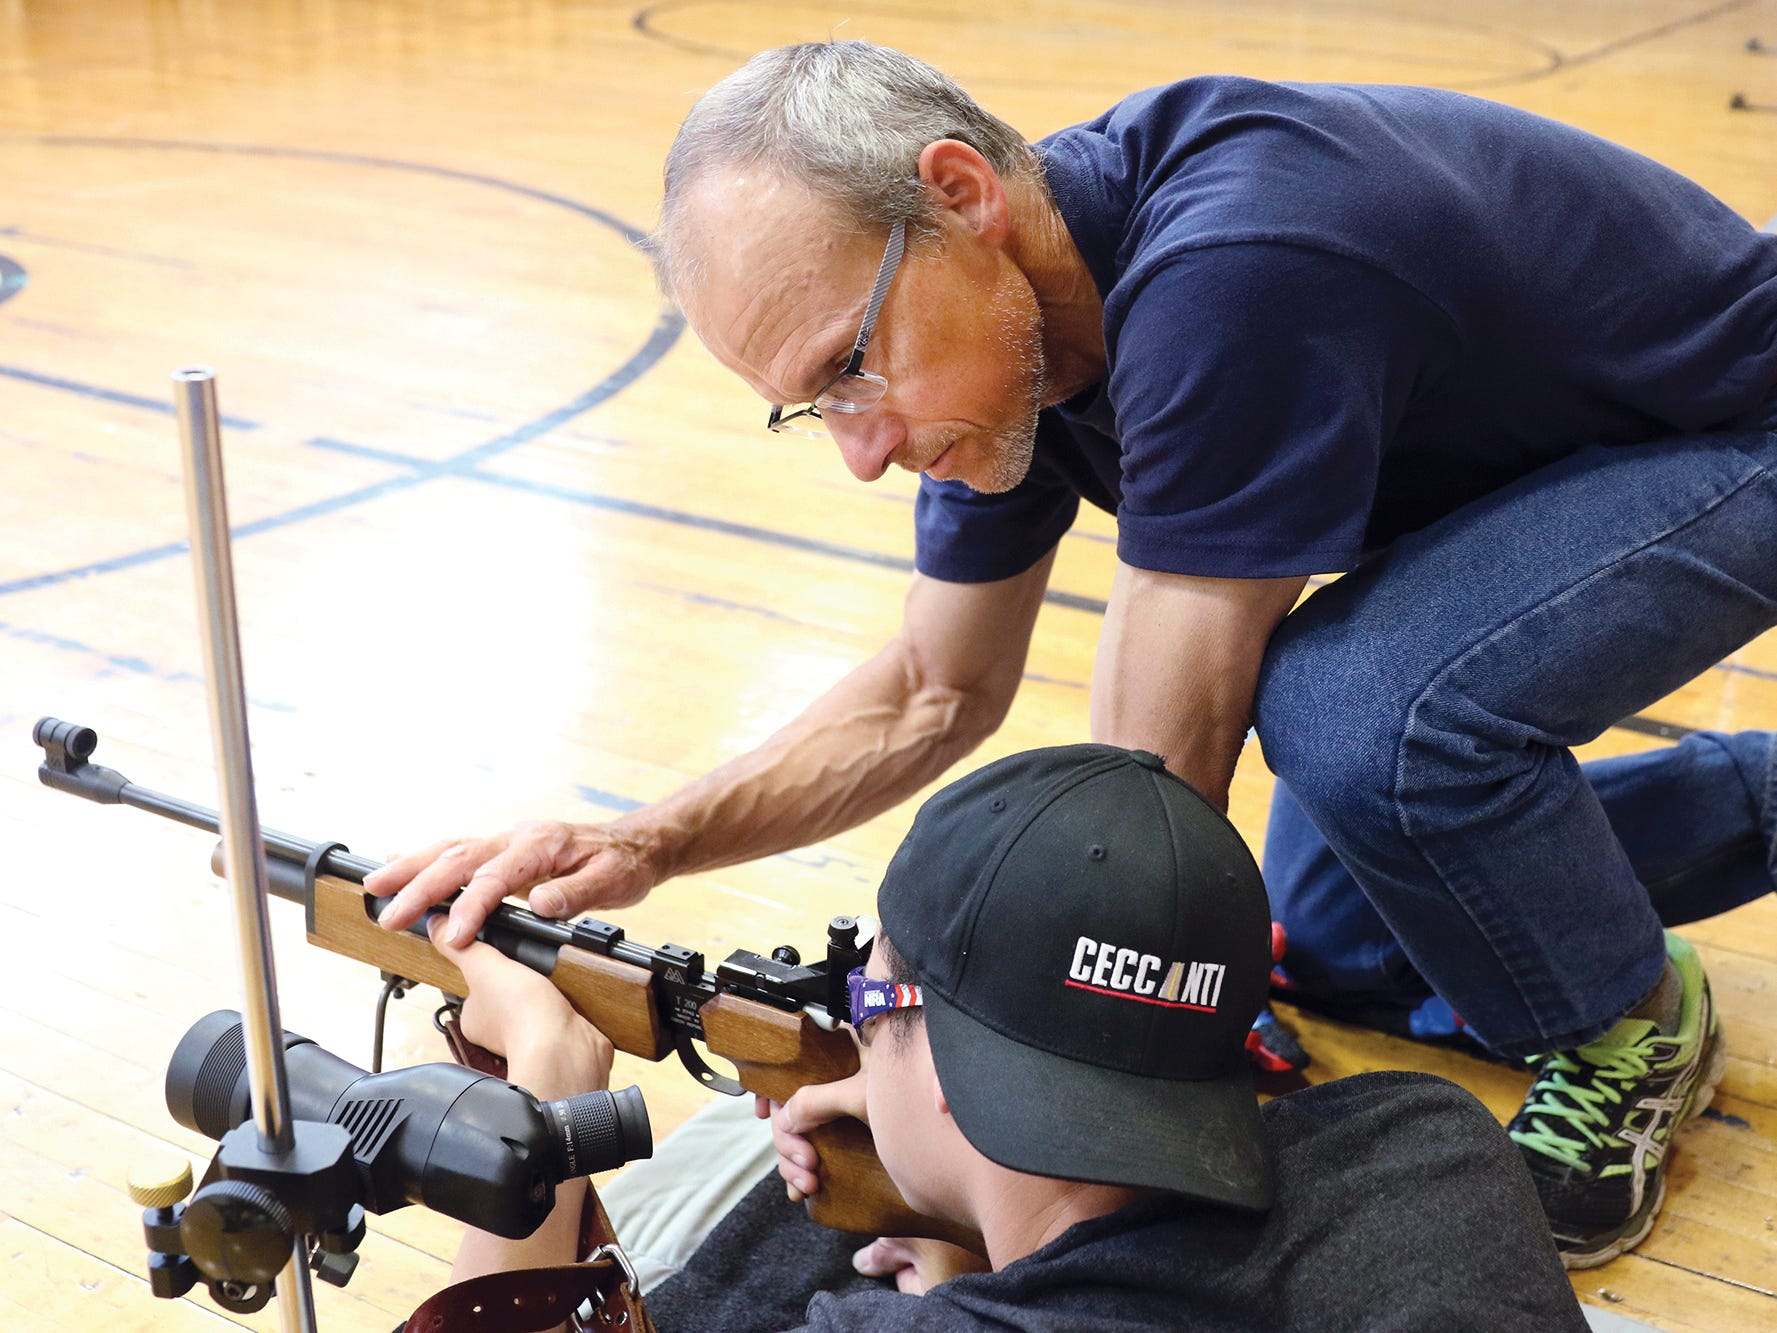 Student Braden Brown, 15, is helped with rifle position by instructor Jeff Phillips at the South Kitsap High School NJROTC Wolf Battalion Rifle Camp runs from August 8-10, at the National Guard Armory in Port Orchard.The camp teaches rifle safety, and shooting technics.He is an SK NJROTC member.